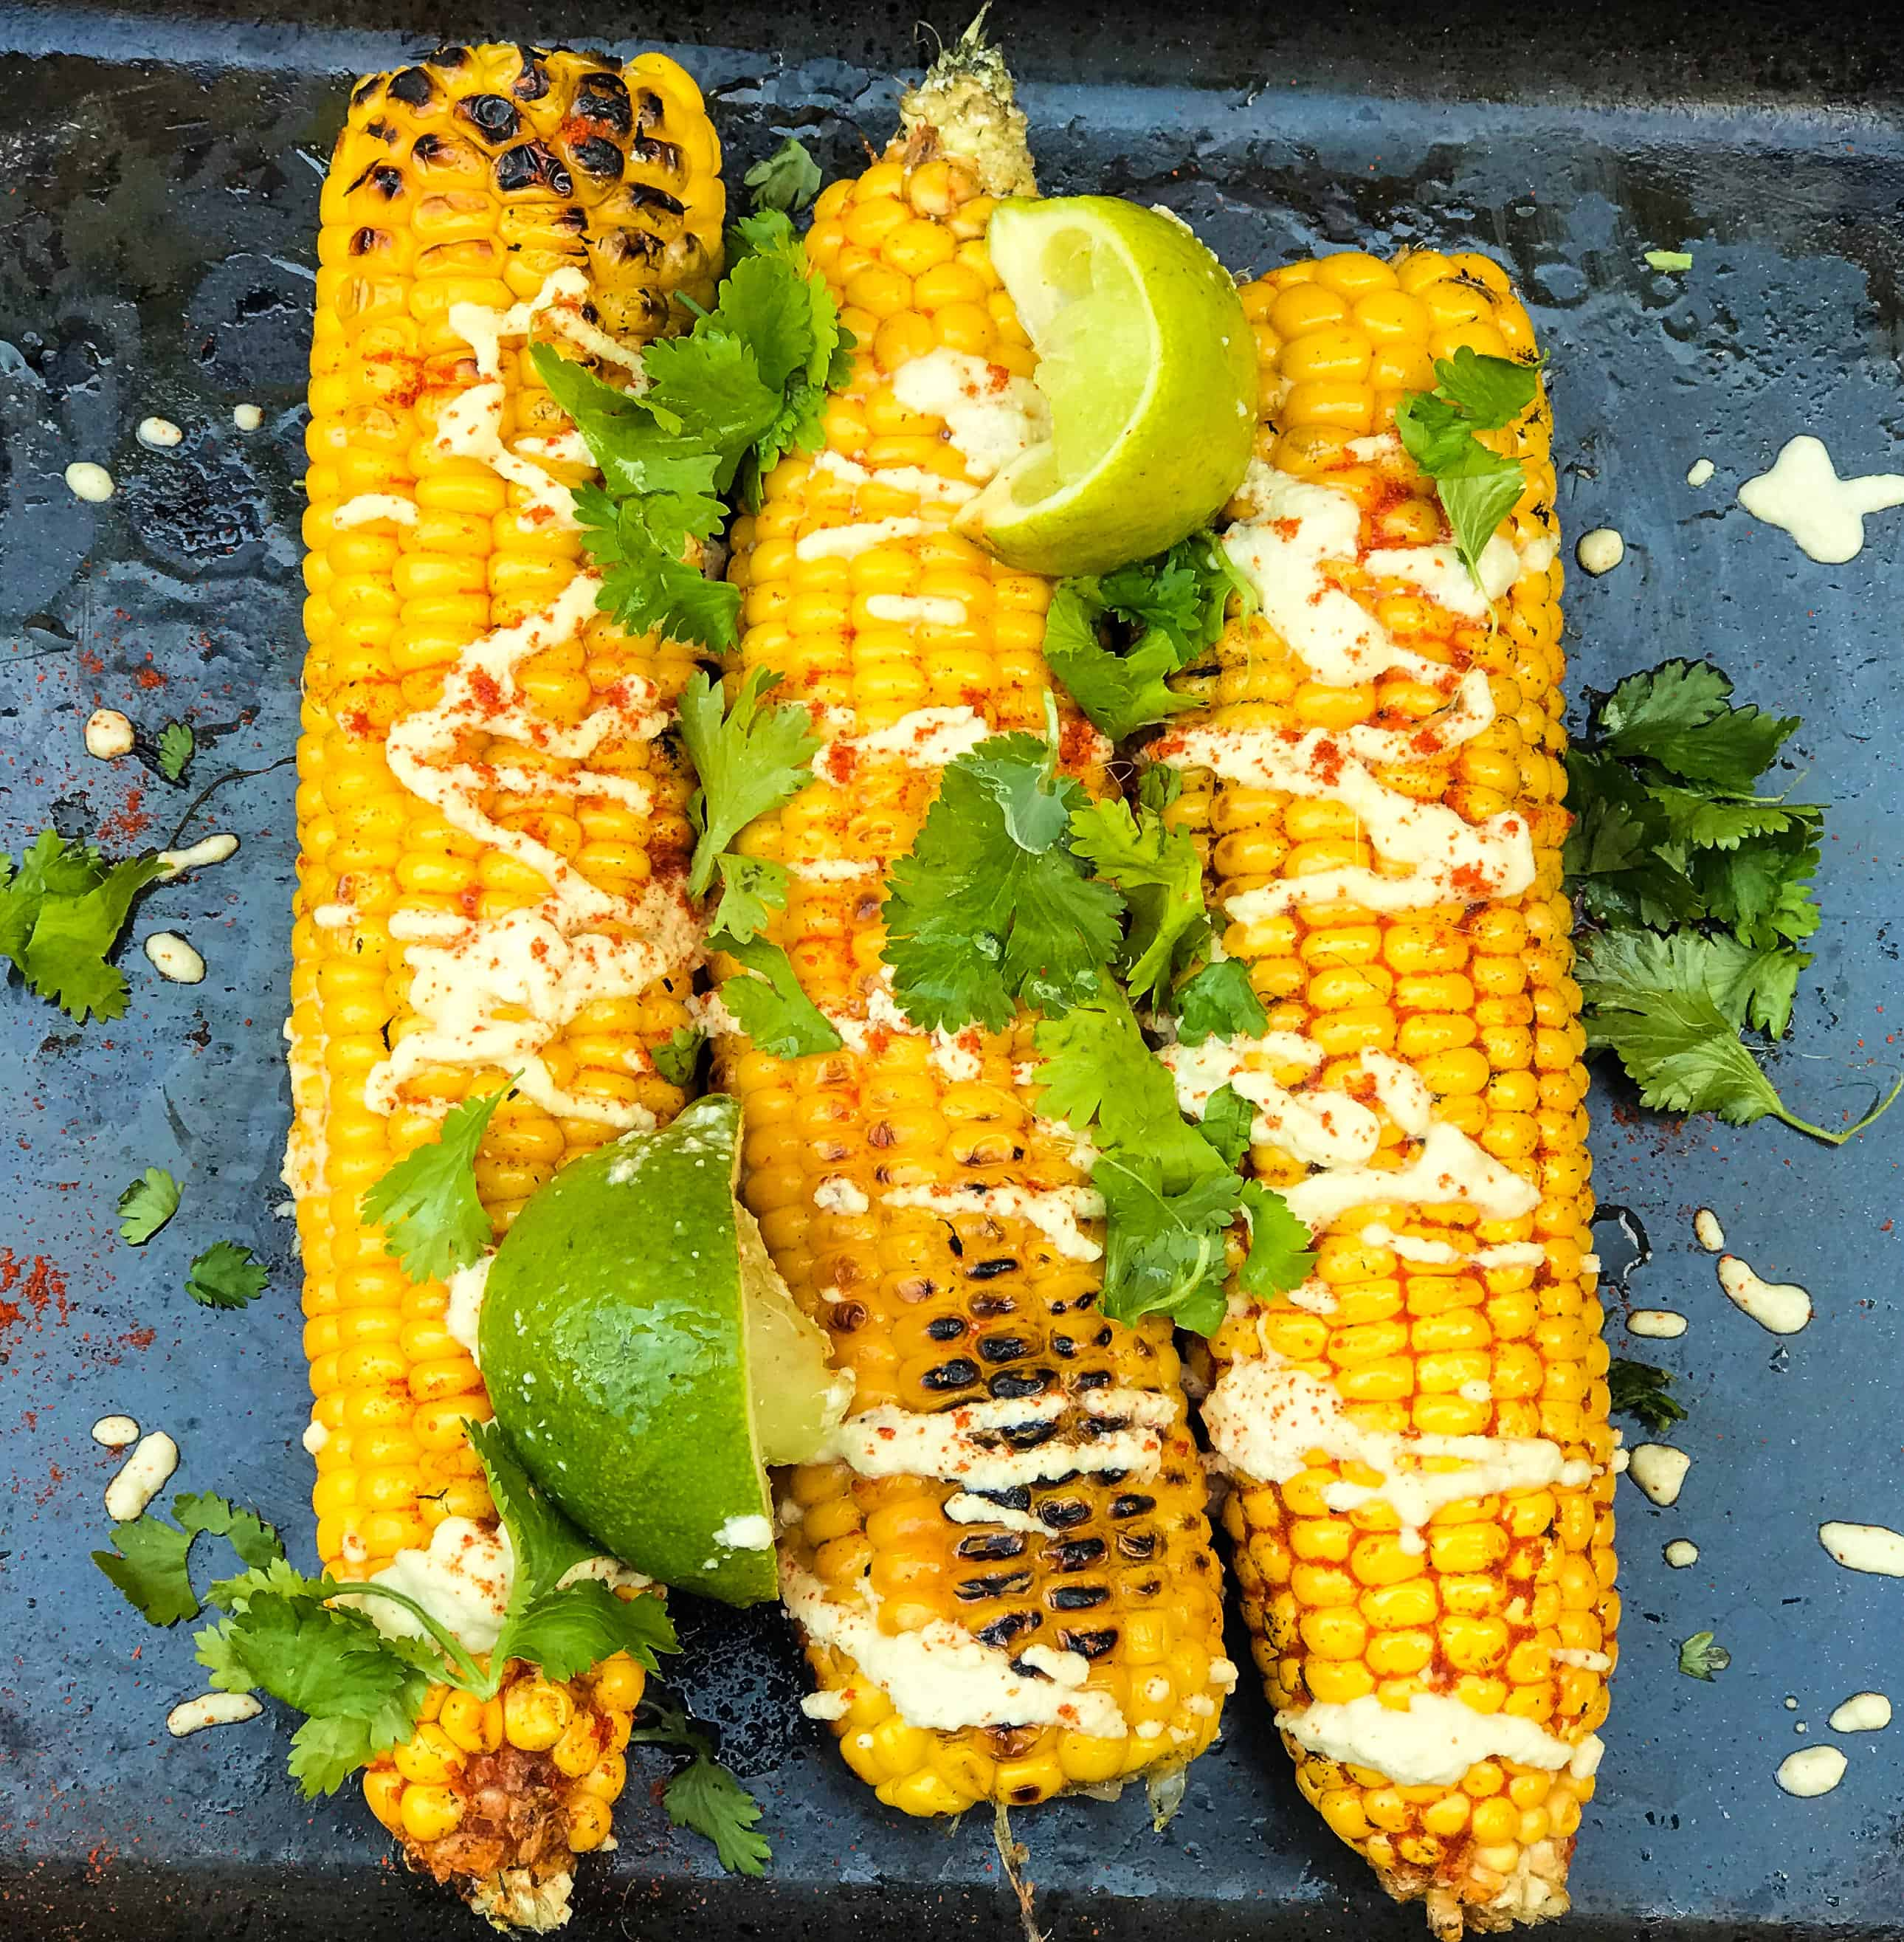 Succulent BBQ Vegan Corn On The Cob Recipe